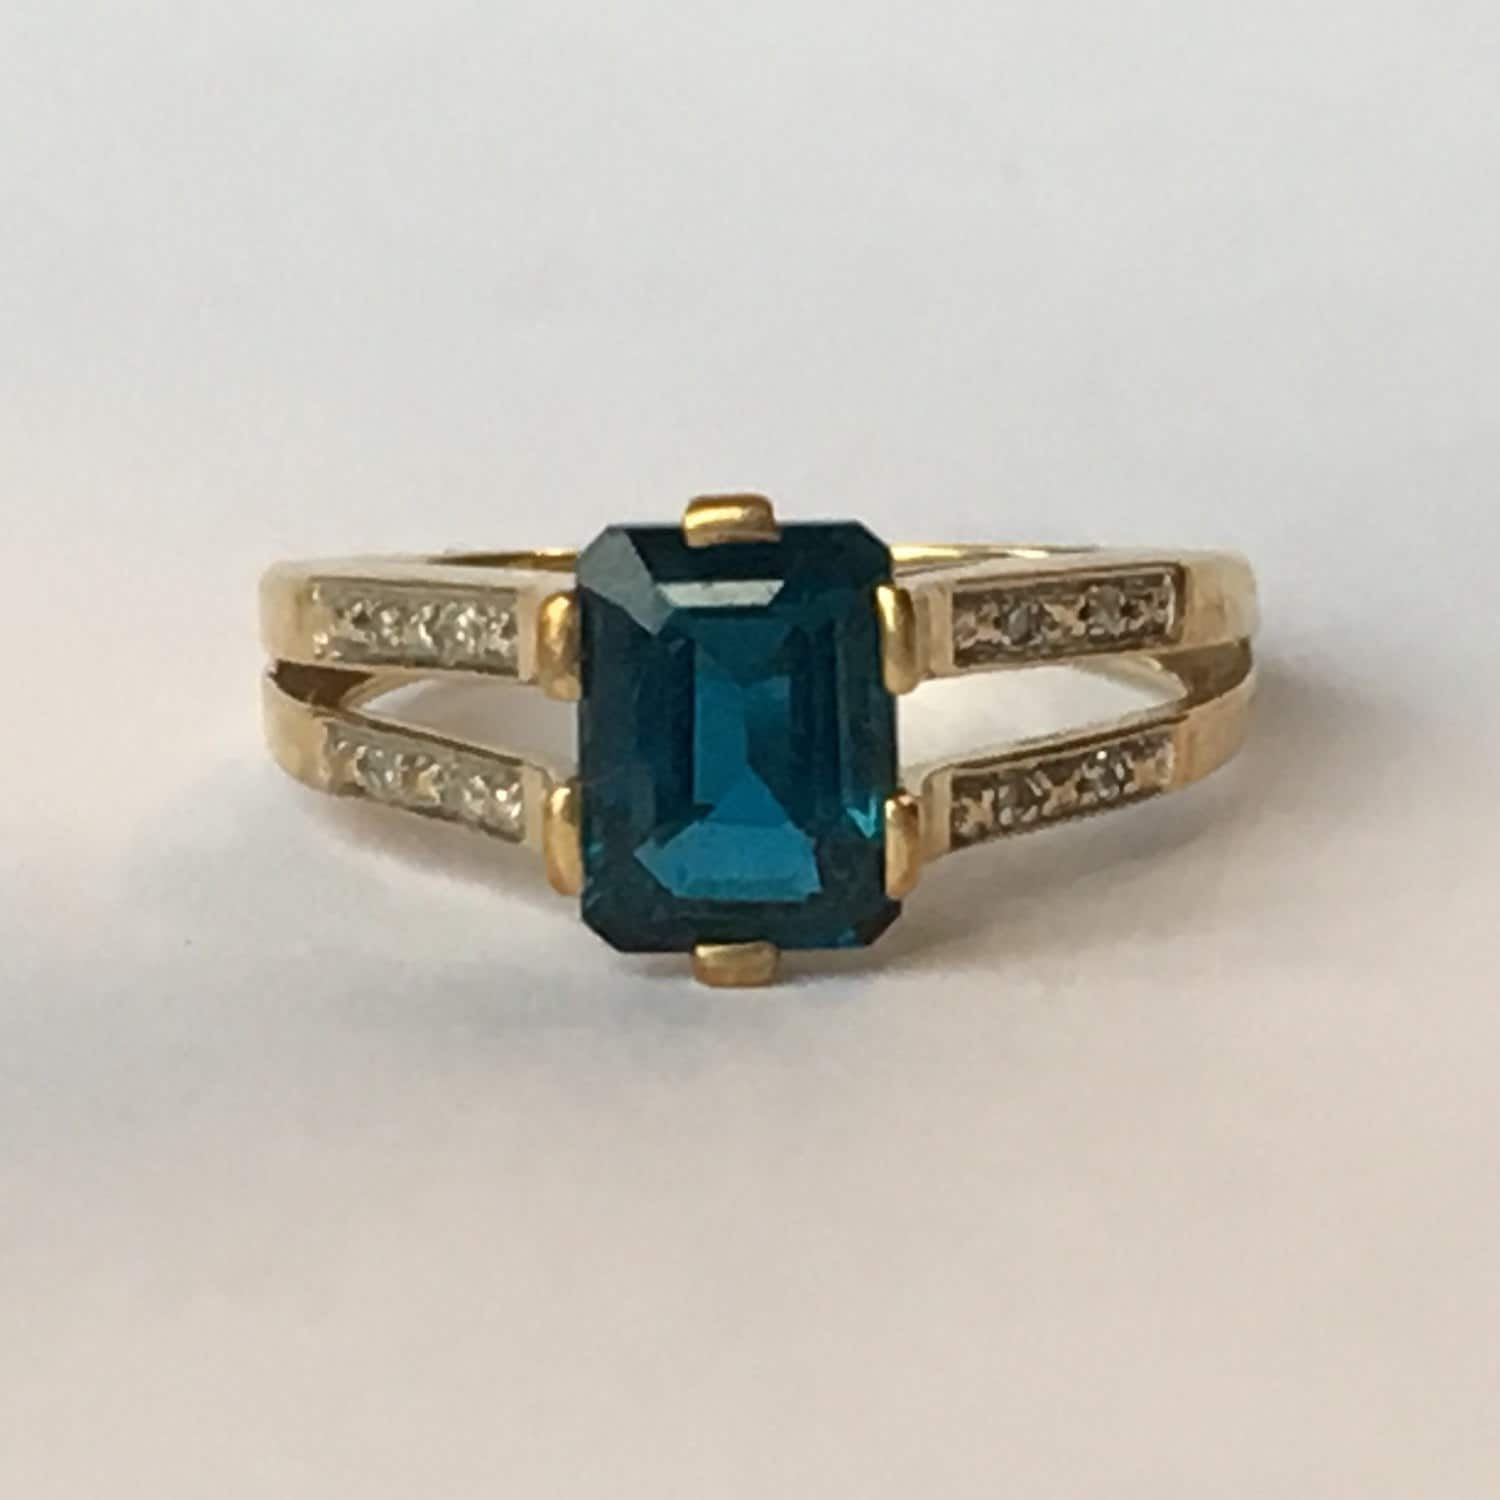 Antique London Blue Topaz And Diamond Ring In Yellow Gold